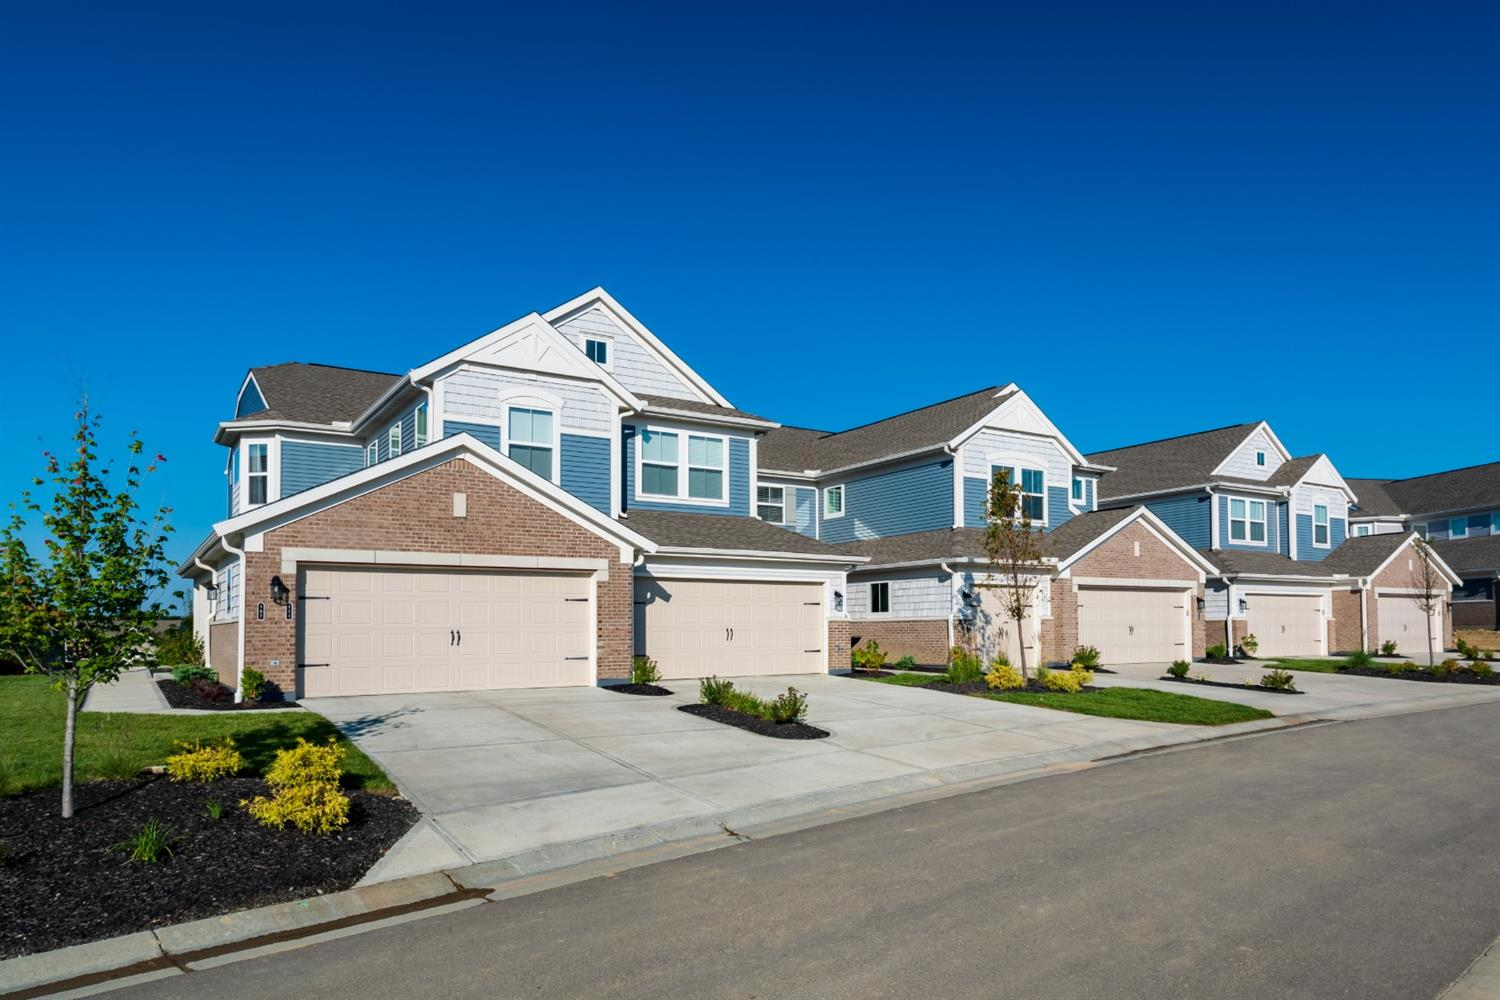 Property for sale at 140 Rippling Brook Lane Unit: 9-302, Springboro,  OH 45066